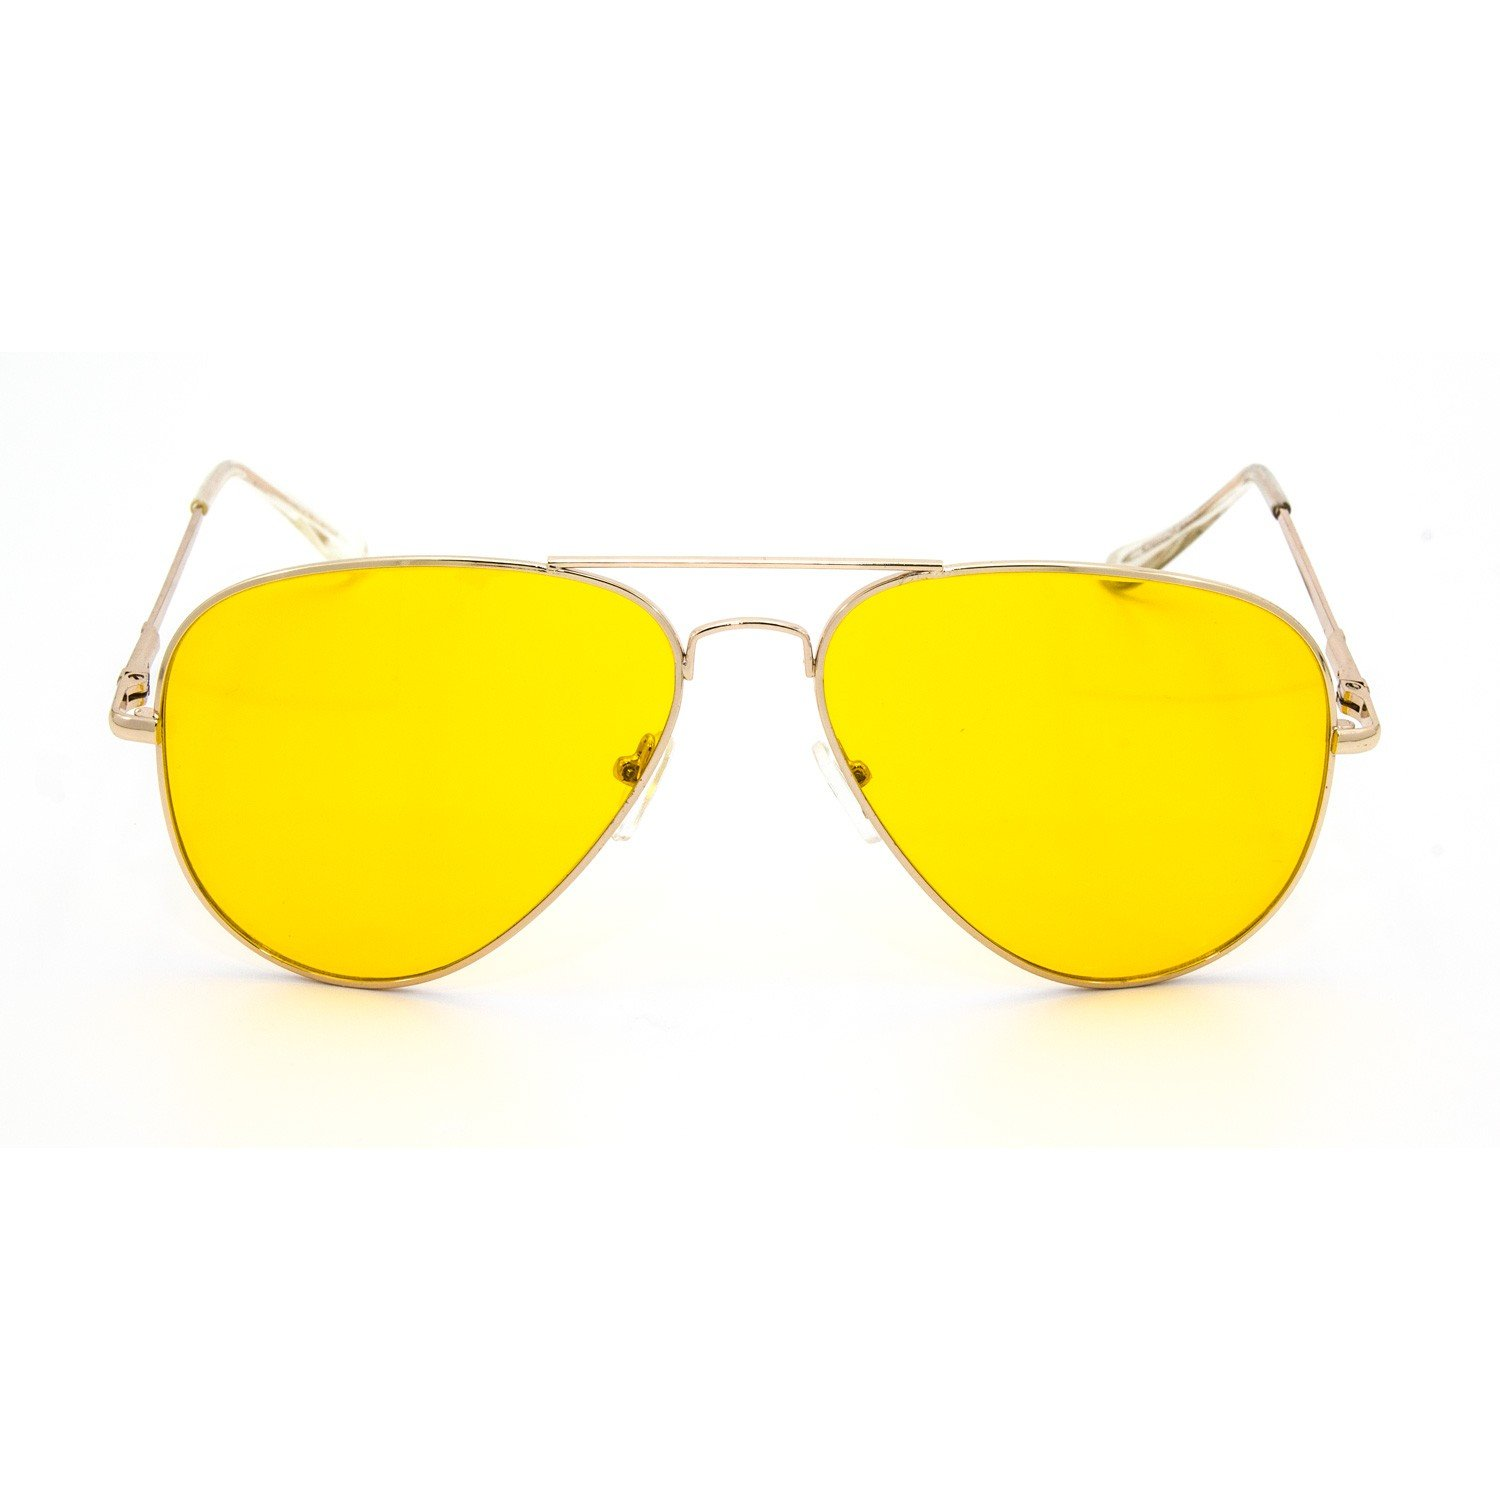 CY SUN Oversized Octagon CLASSIC VINTAGE RETRO Style Clear Lens EYE GLASSES Gold Frame